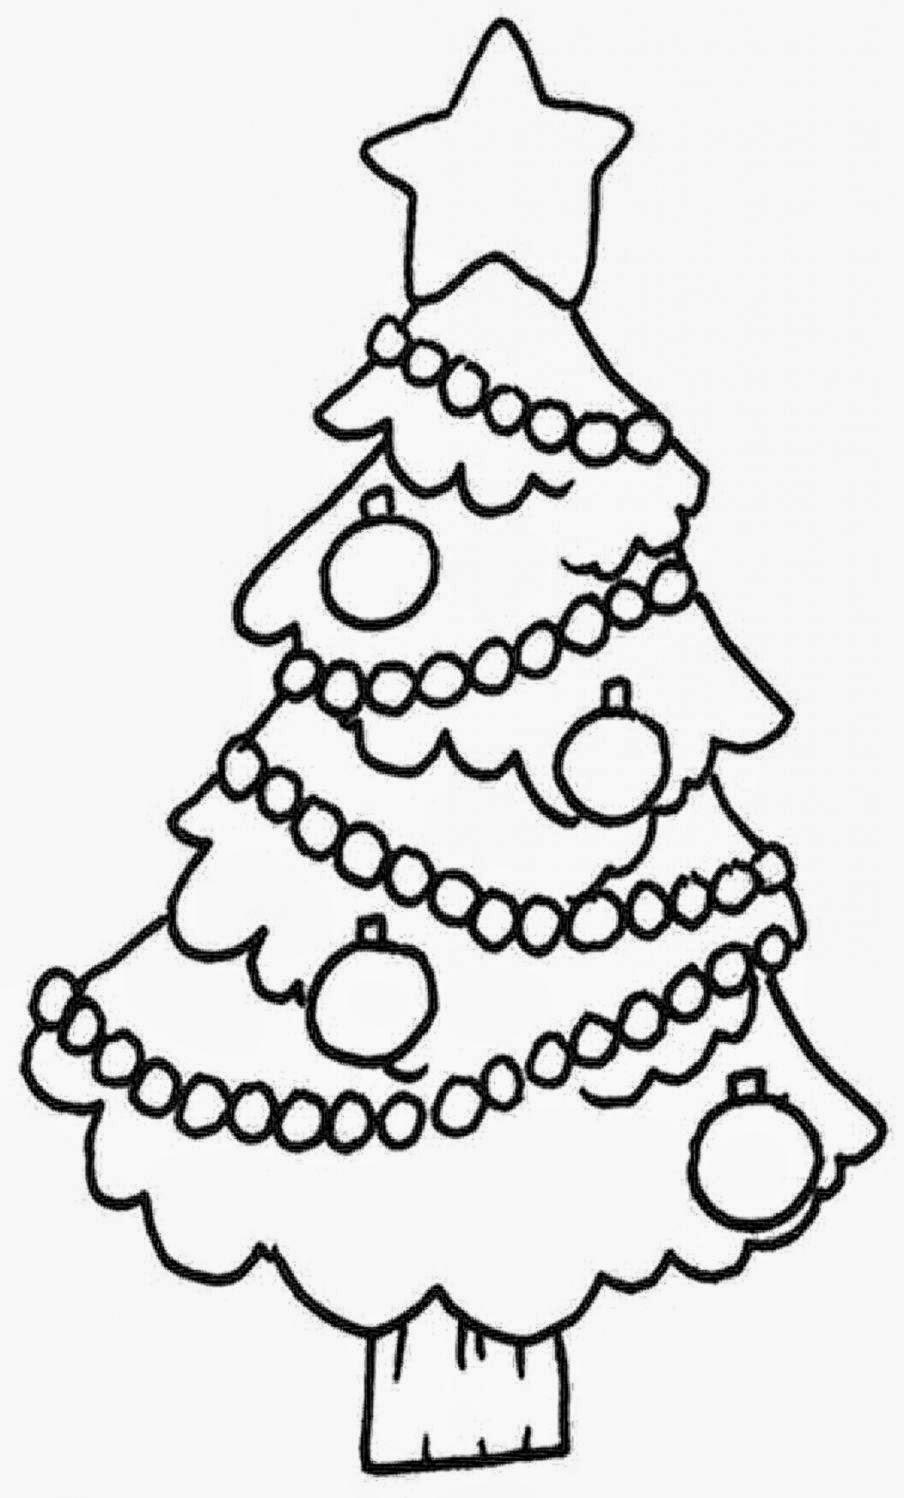 Christmas Coloring Sheets For Kids Free Coloring Sheet - Coloring